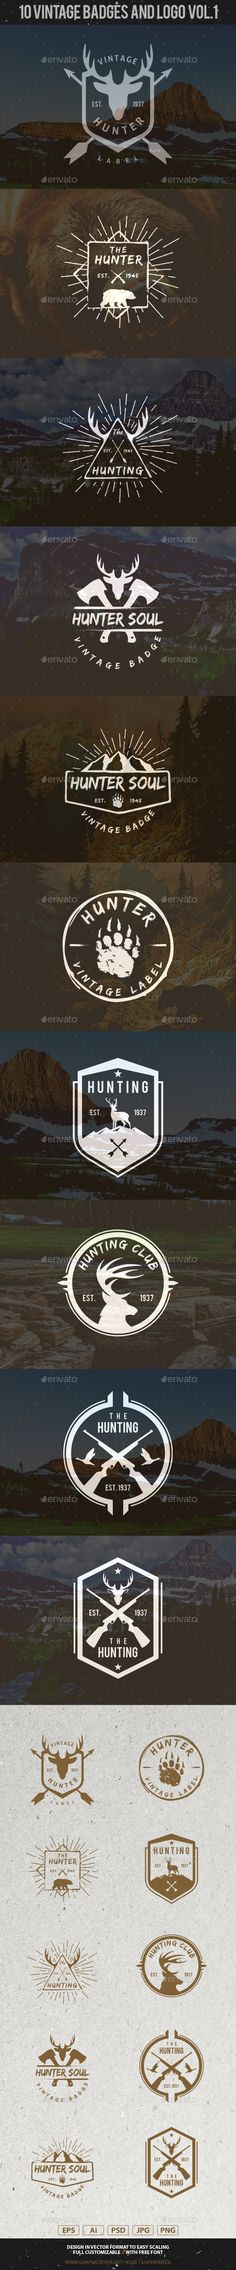 10 Hunting Vintage Badges and Logos | #vintagebadges #vintagelogo | Download: http://graphicriver.net/item/10-hunting-vintage-badges-and-logos-vol1/10308803?ref=ksioks